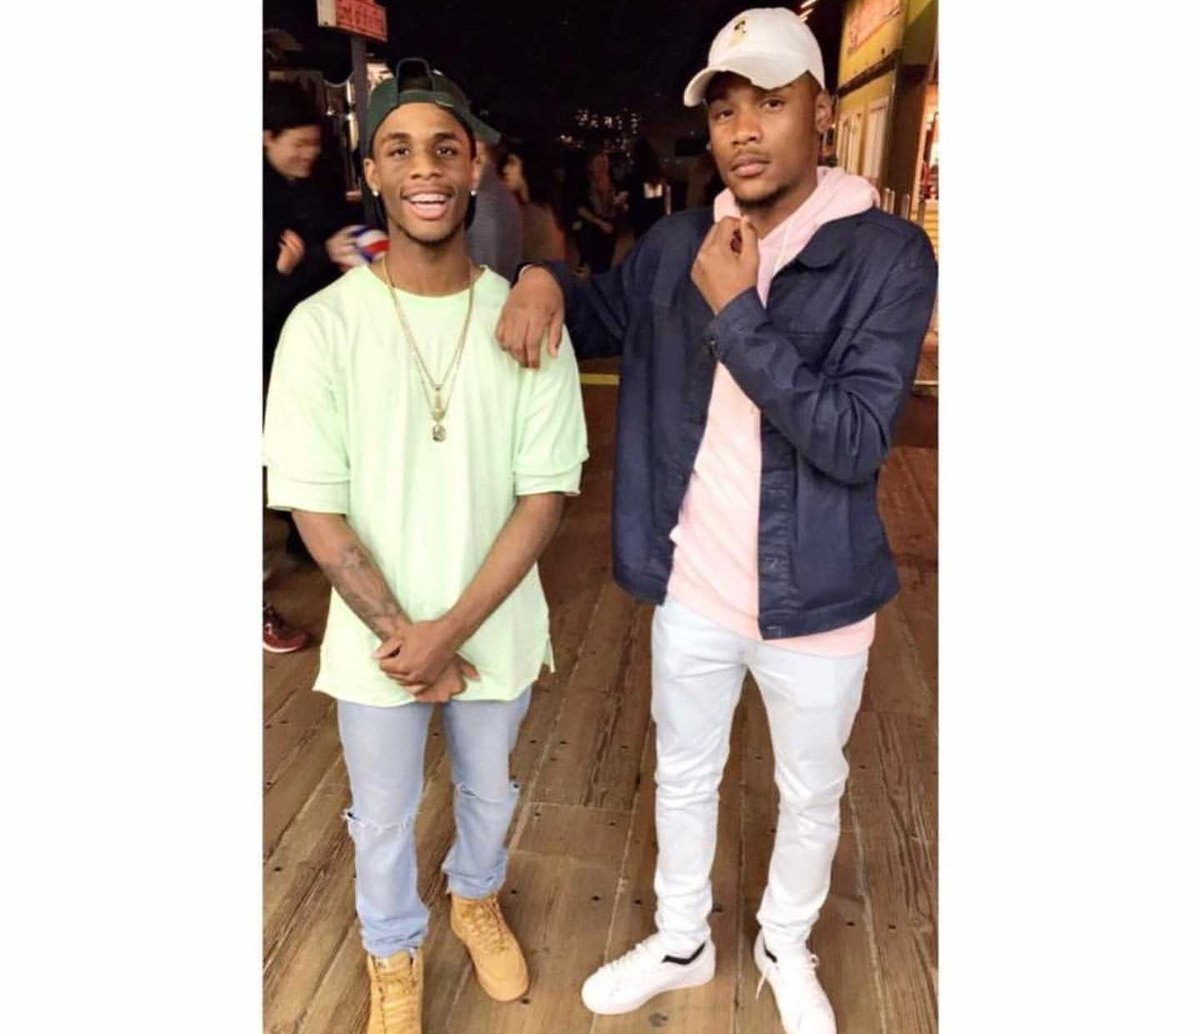 the two favorite brothers that everybody wants a little taste of huh?!😉😍